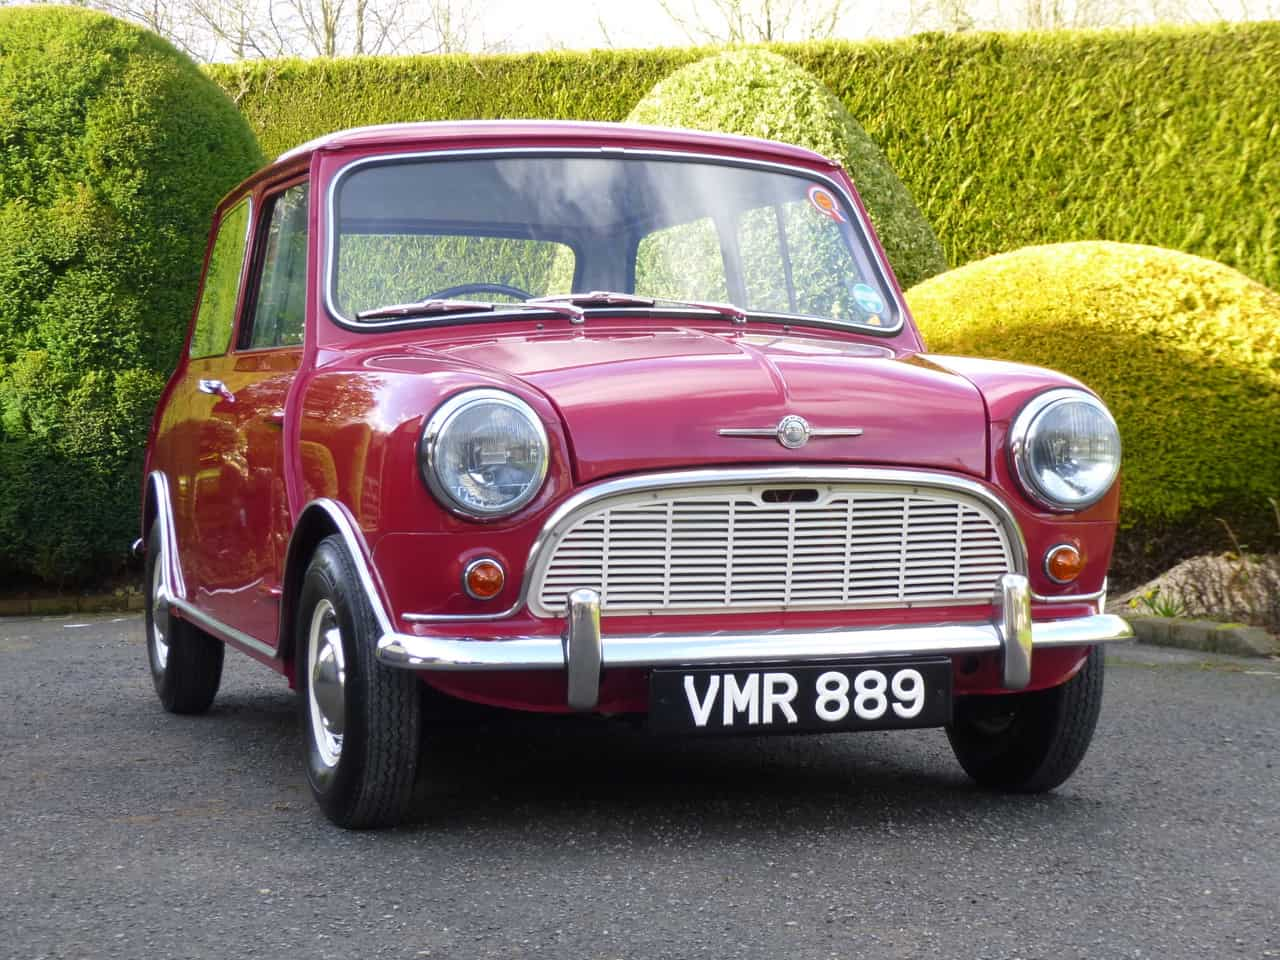 ** NOW SOLD ** 1960 Morris Mini Minor Deluxe In fantastic Restored Condition.